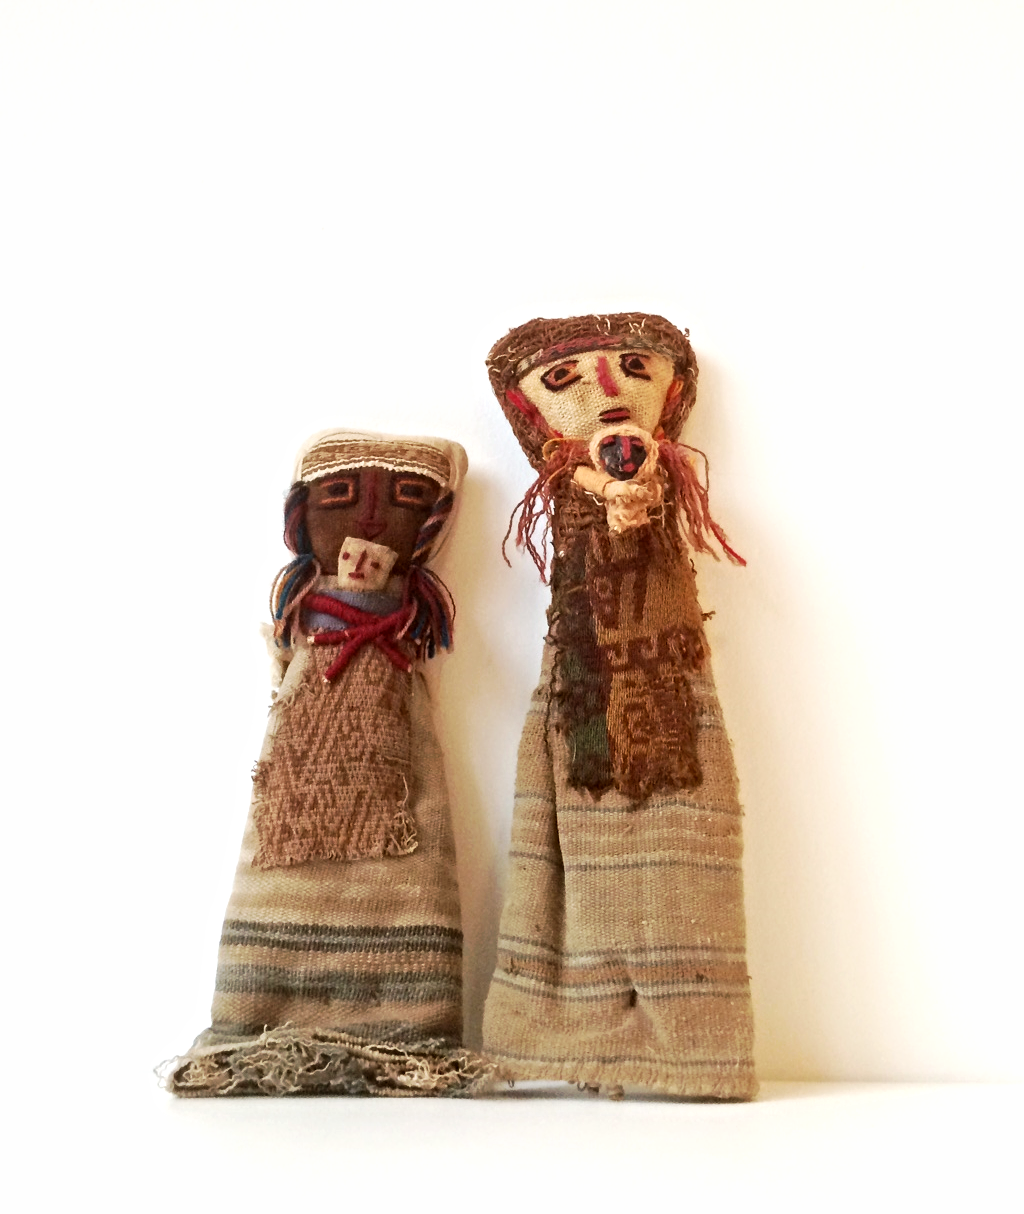 These Chancay burial dolls from Cusco, Peru, which Wally named Claudia and Lucha, have dollies of their own